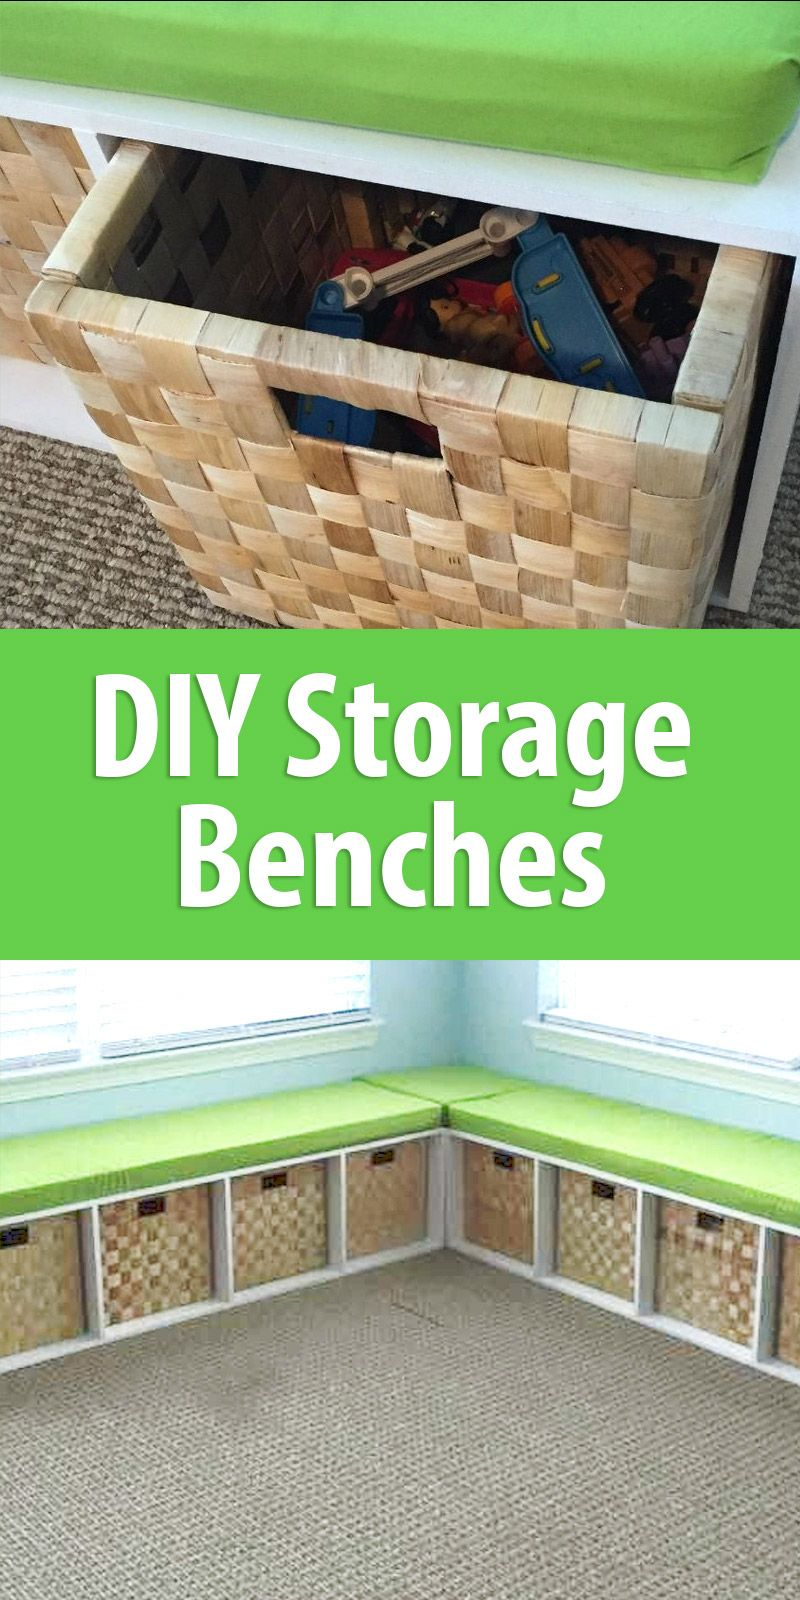 DIY Storage Benches | Organization | Diy storage bench seat ...